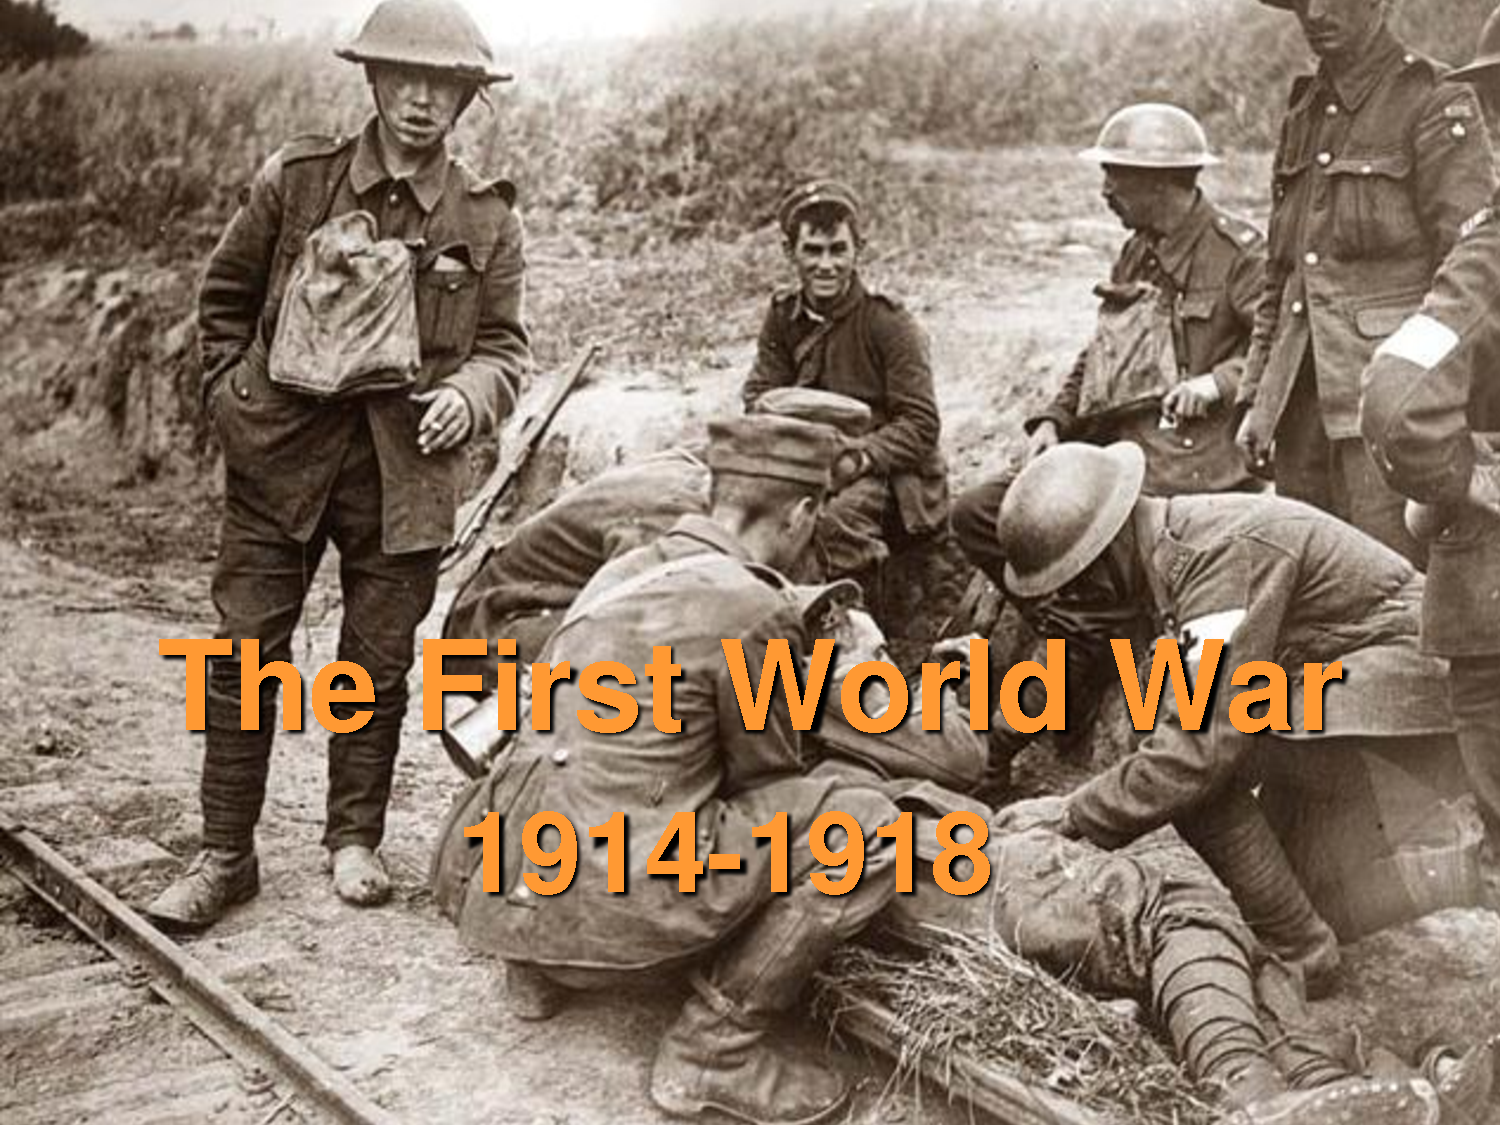 How did World War I start and end?